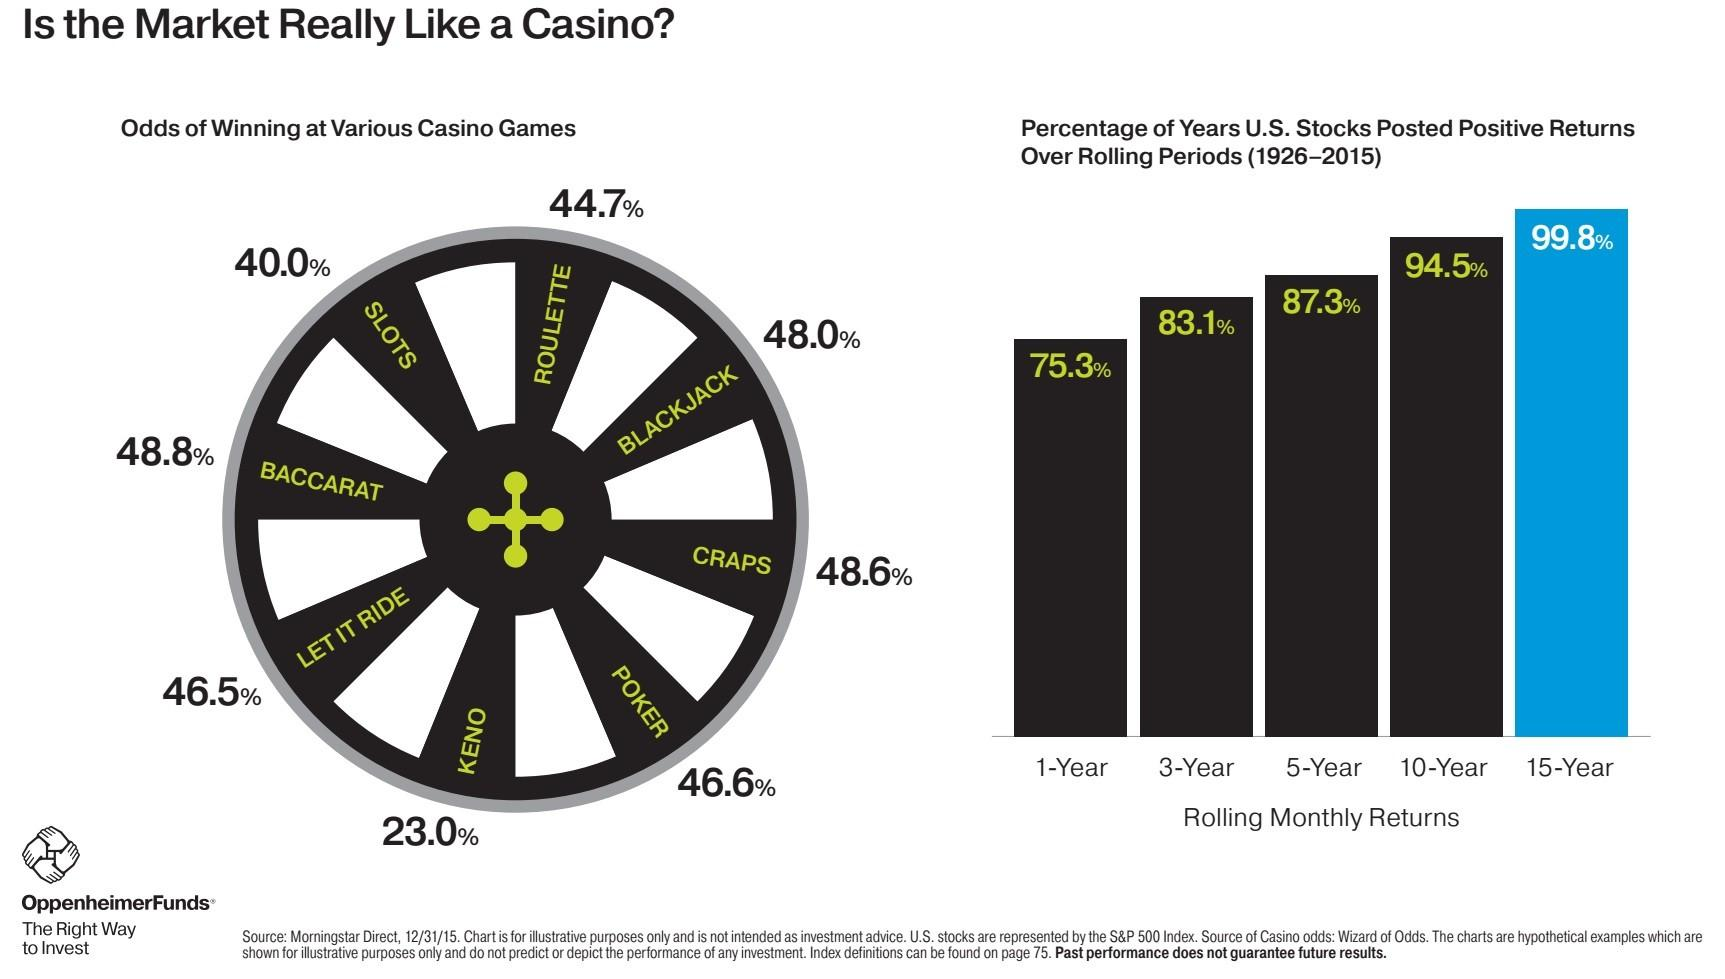 is-the-market-really-like-a-casino-1926-2015